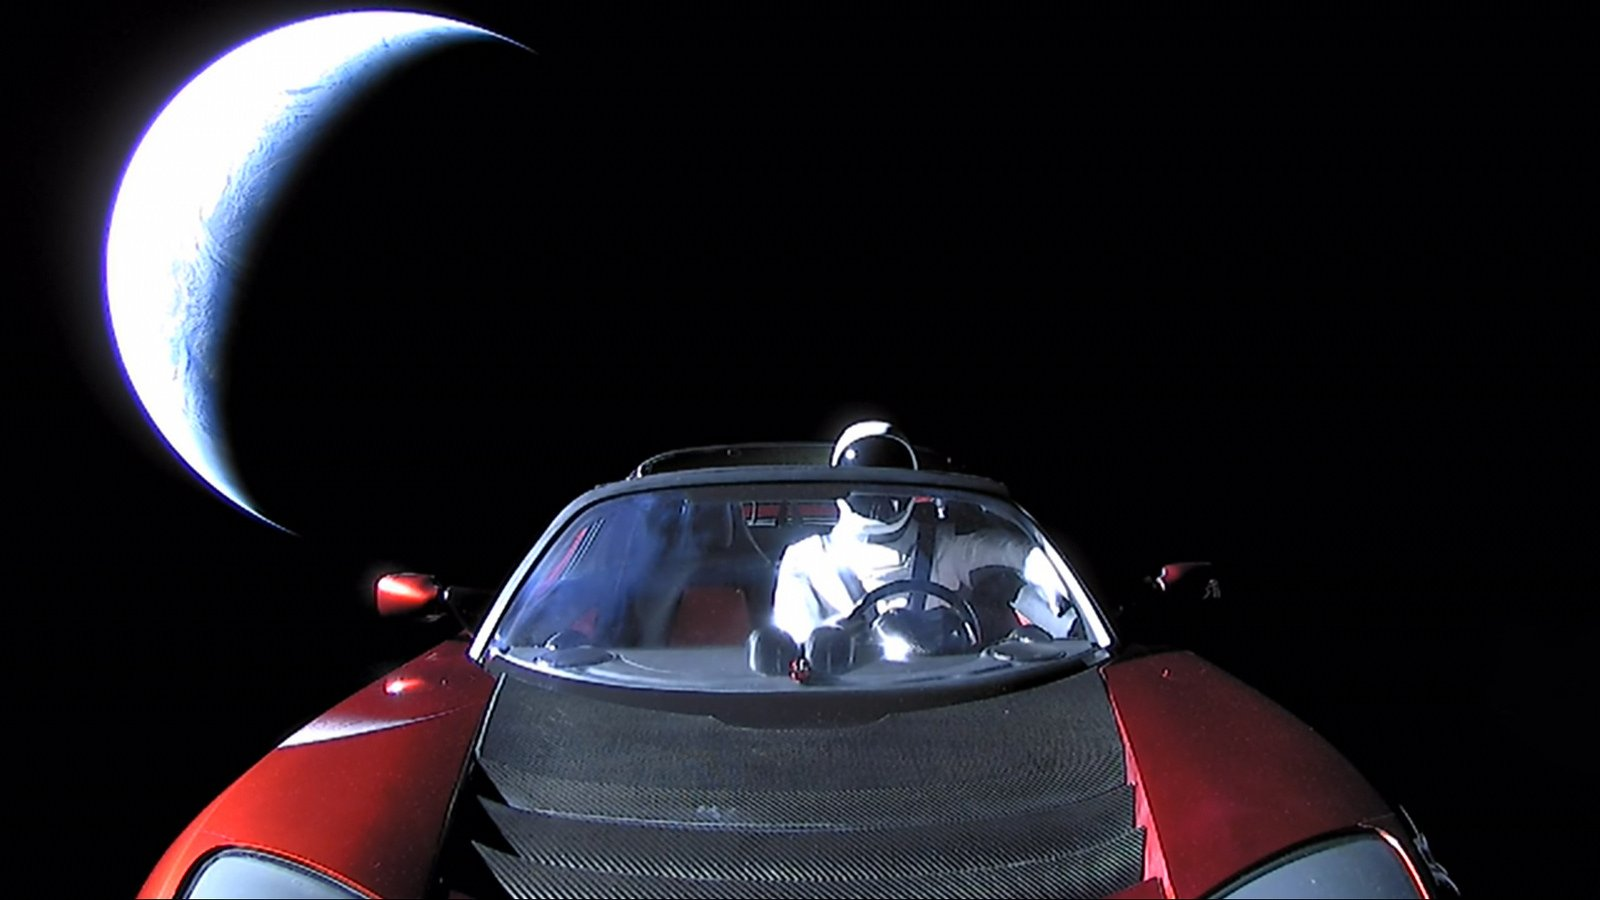 NASA has officially listed Musk's Tesla Roadster as a 'celestial object' https://t.co/ETVTppSt68 https://t.co/sFvIndnyYm